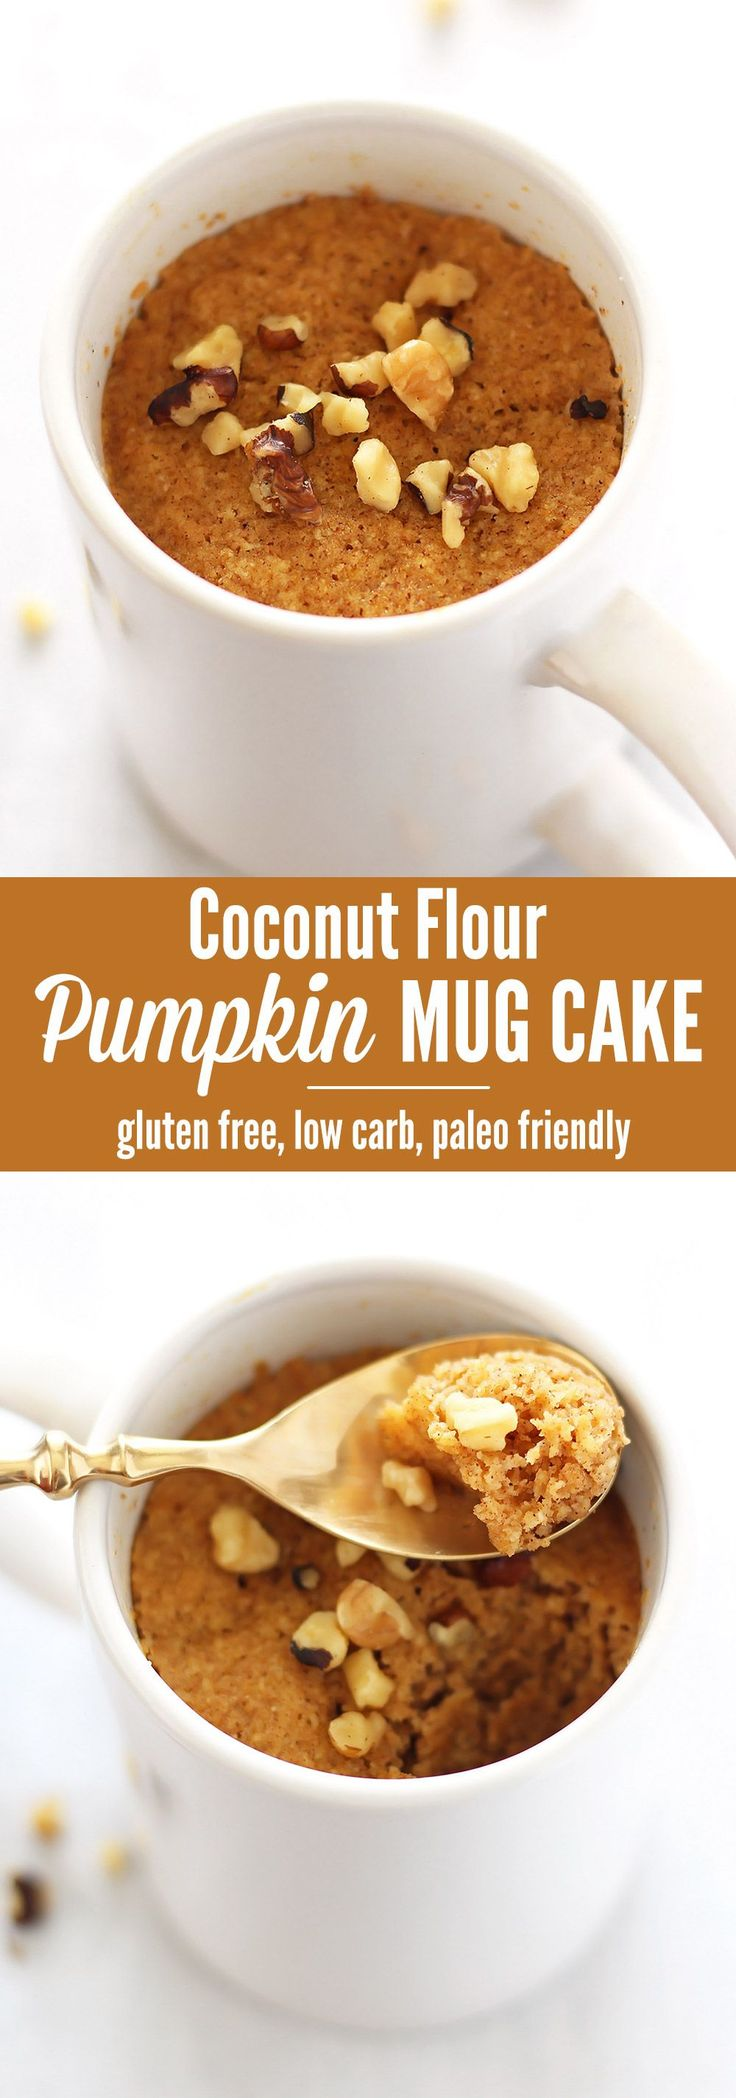 Coconut Flour Pumpkin Spice Mug Cake - sub for the syrup